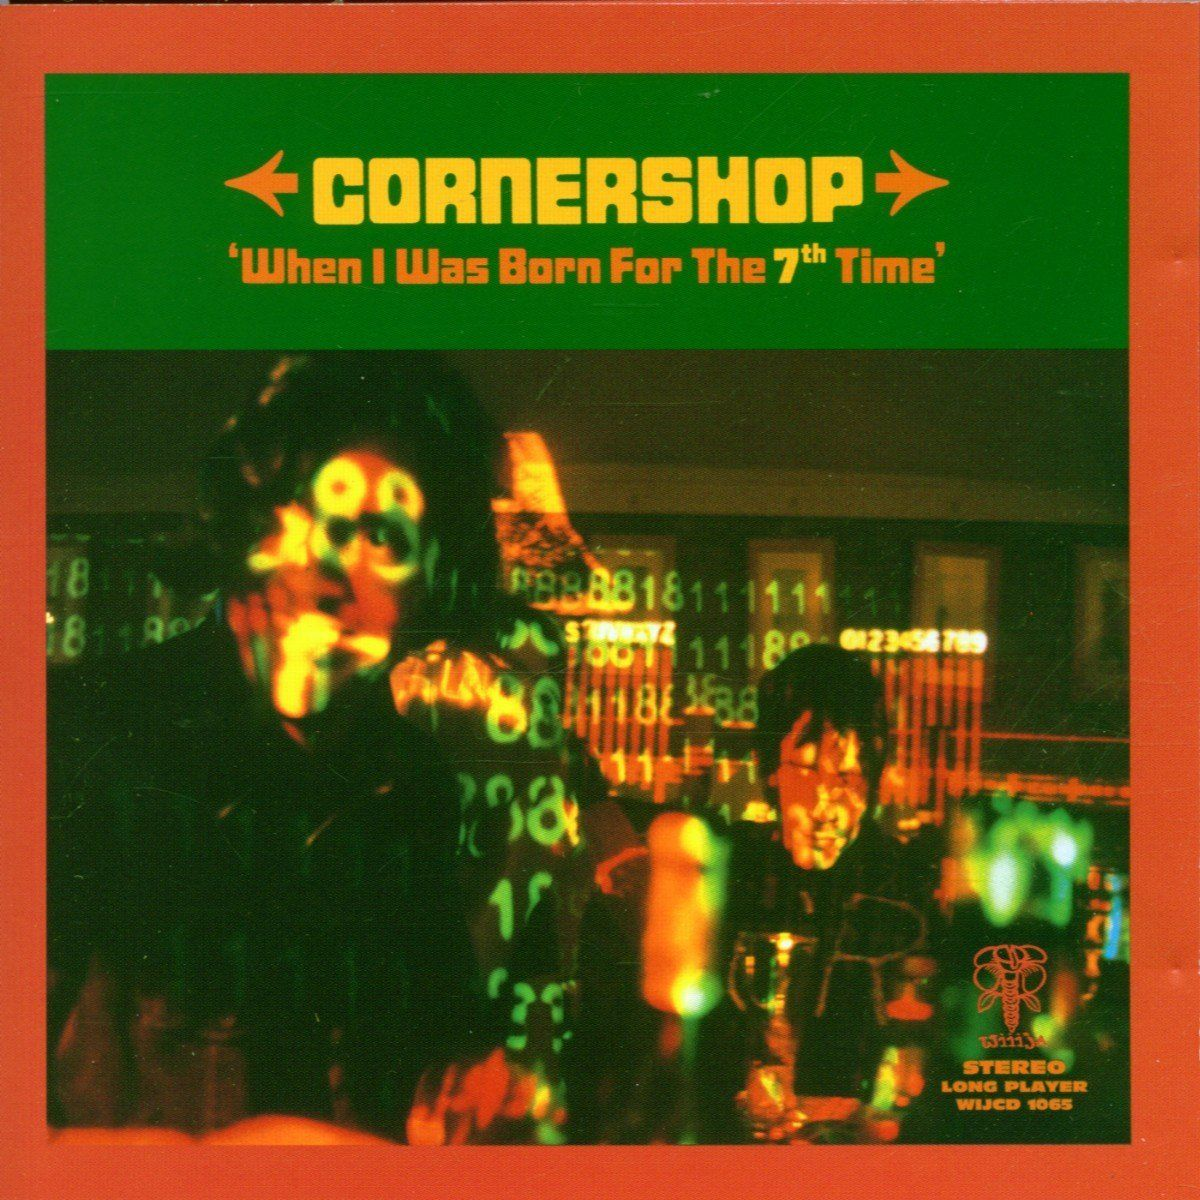 CORNERSHOP - When I Was Born For The 7th Time - in download